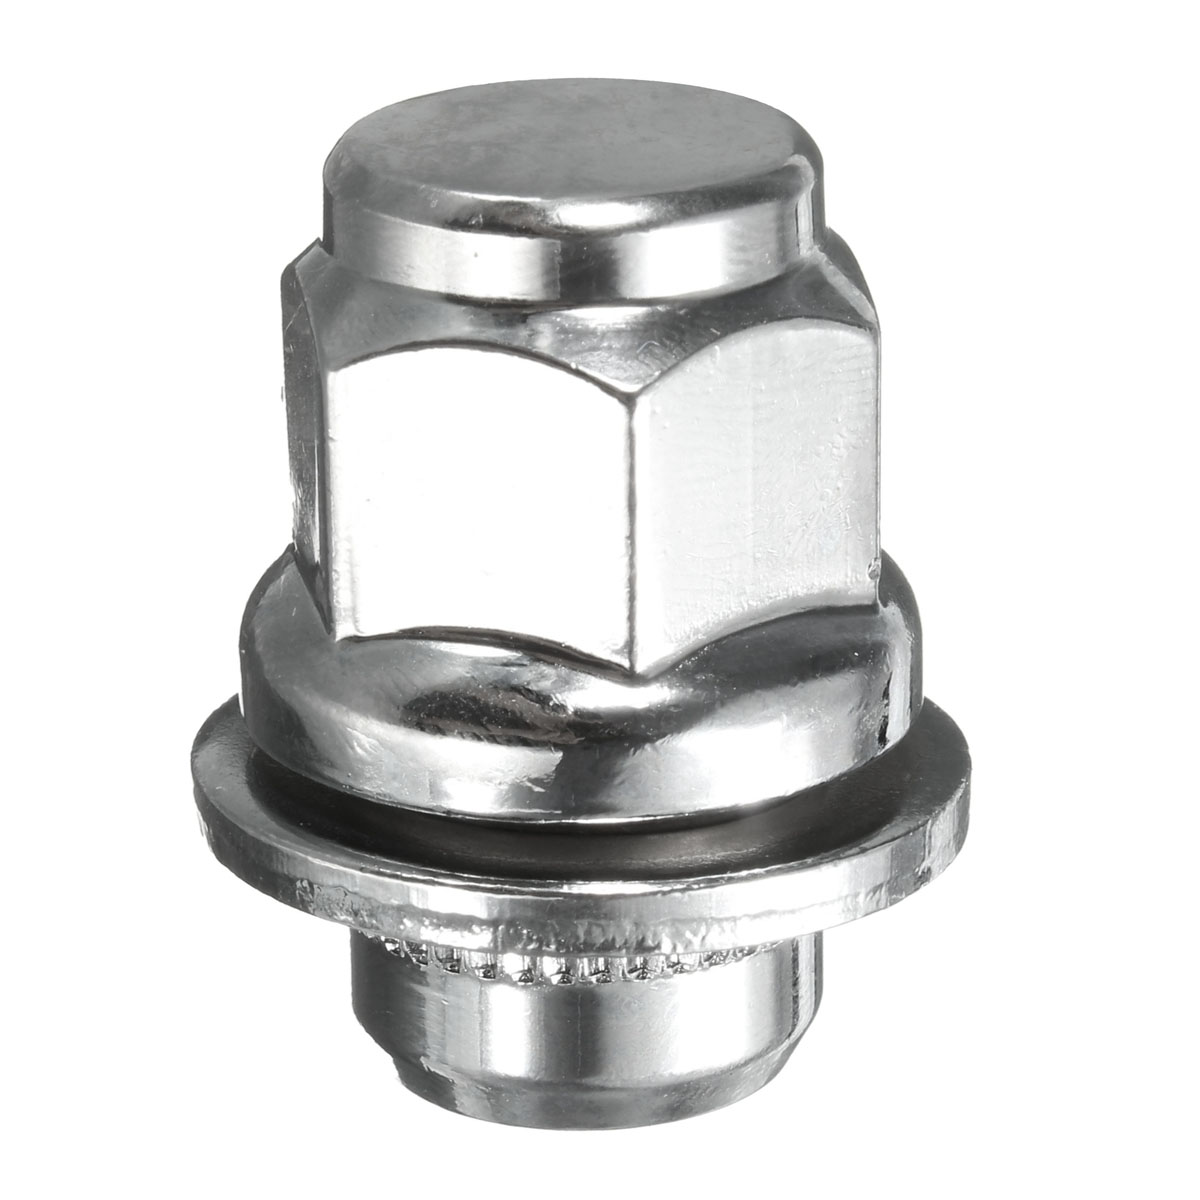 Hot 20pcs Chrome M12 x 1.25 Mag Seat Lug Nuts Steel Wheels Replace for Nissan for Infiniti